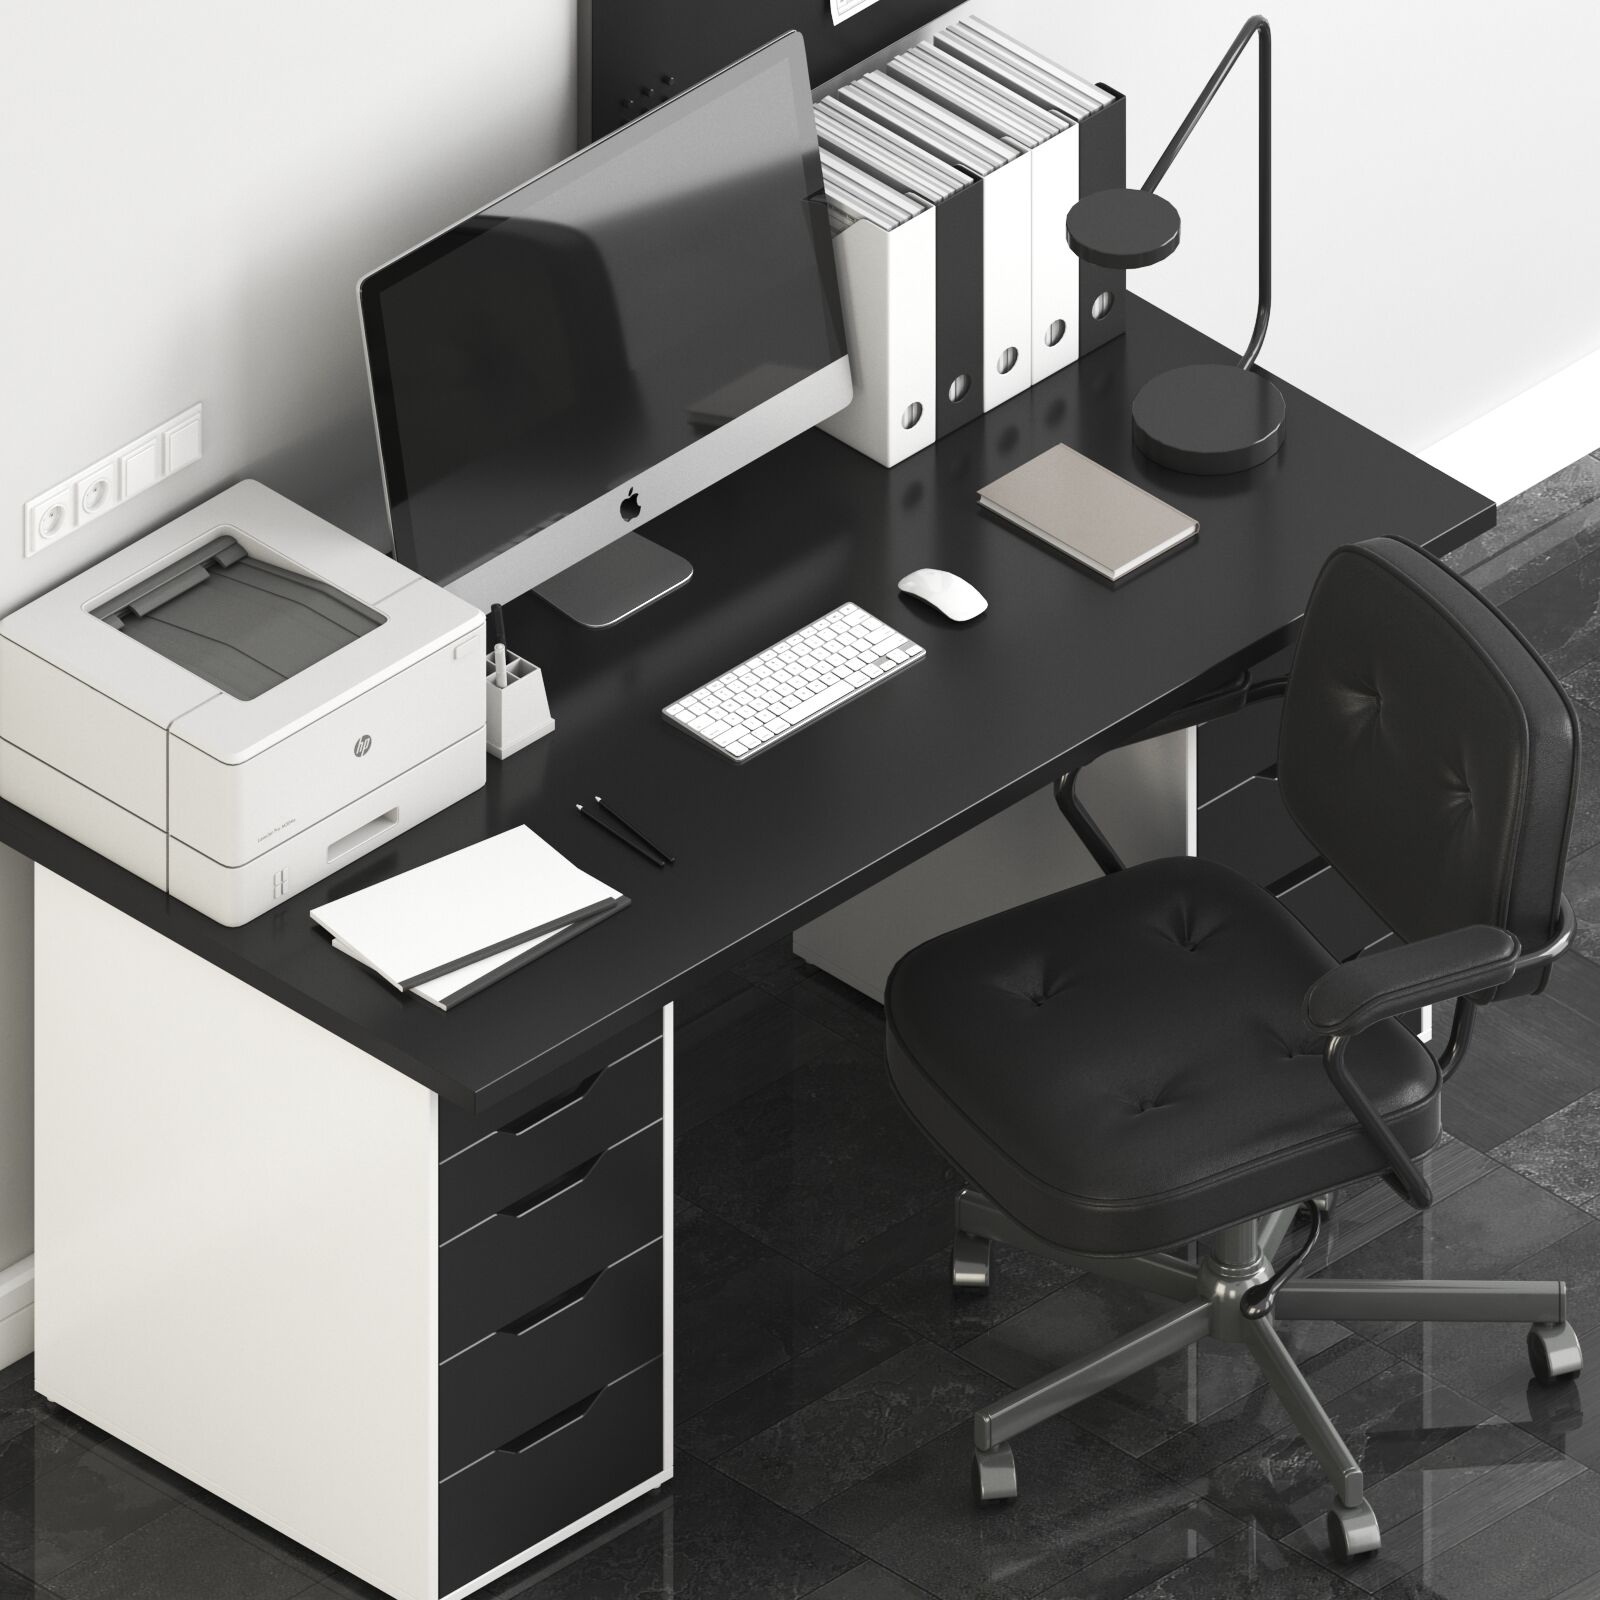 Ikea Office Workplace With Alex Table And Alefjäll Chair 3d Model Download 3d Model Ikea Office Workplace With Alex Table And Alefjäll Chair 18803 3dbaza Com